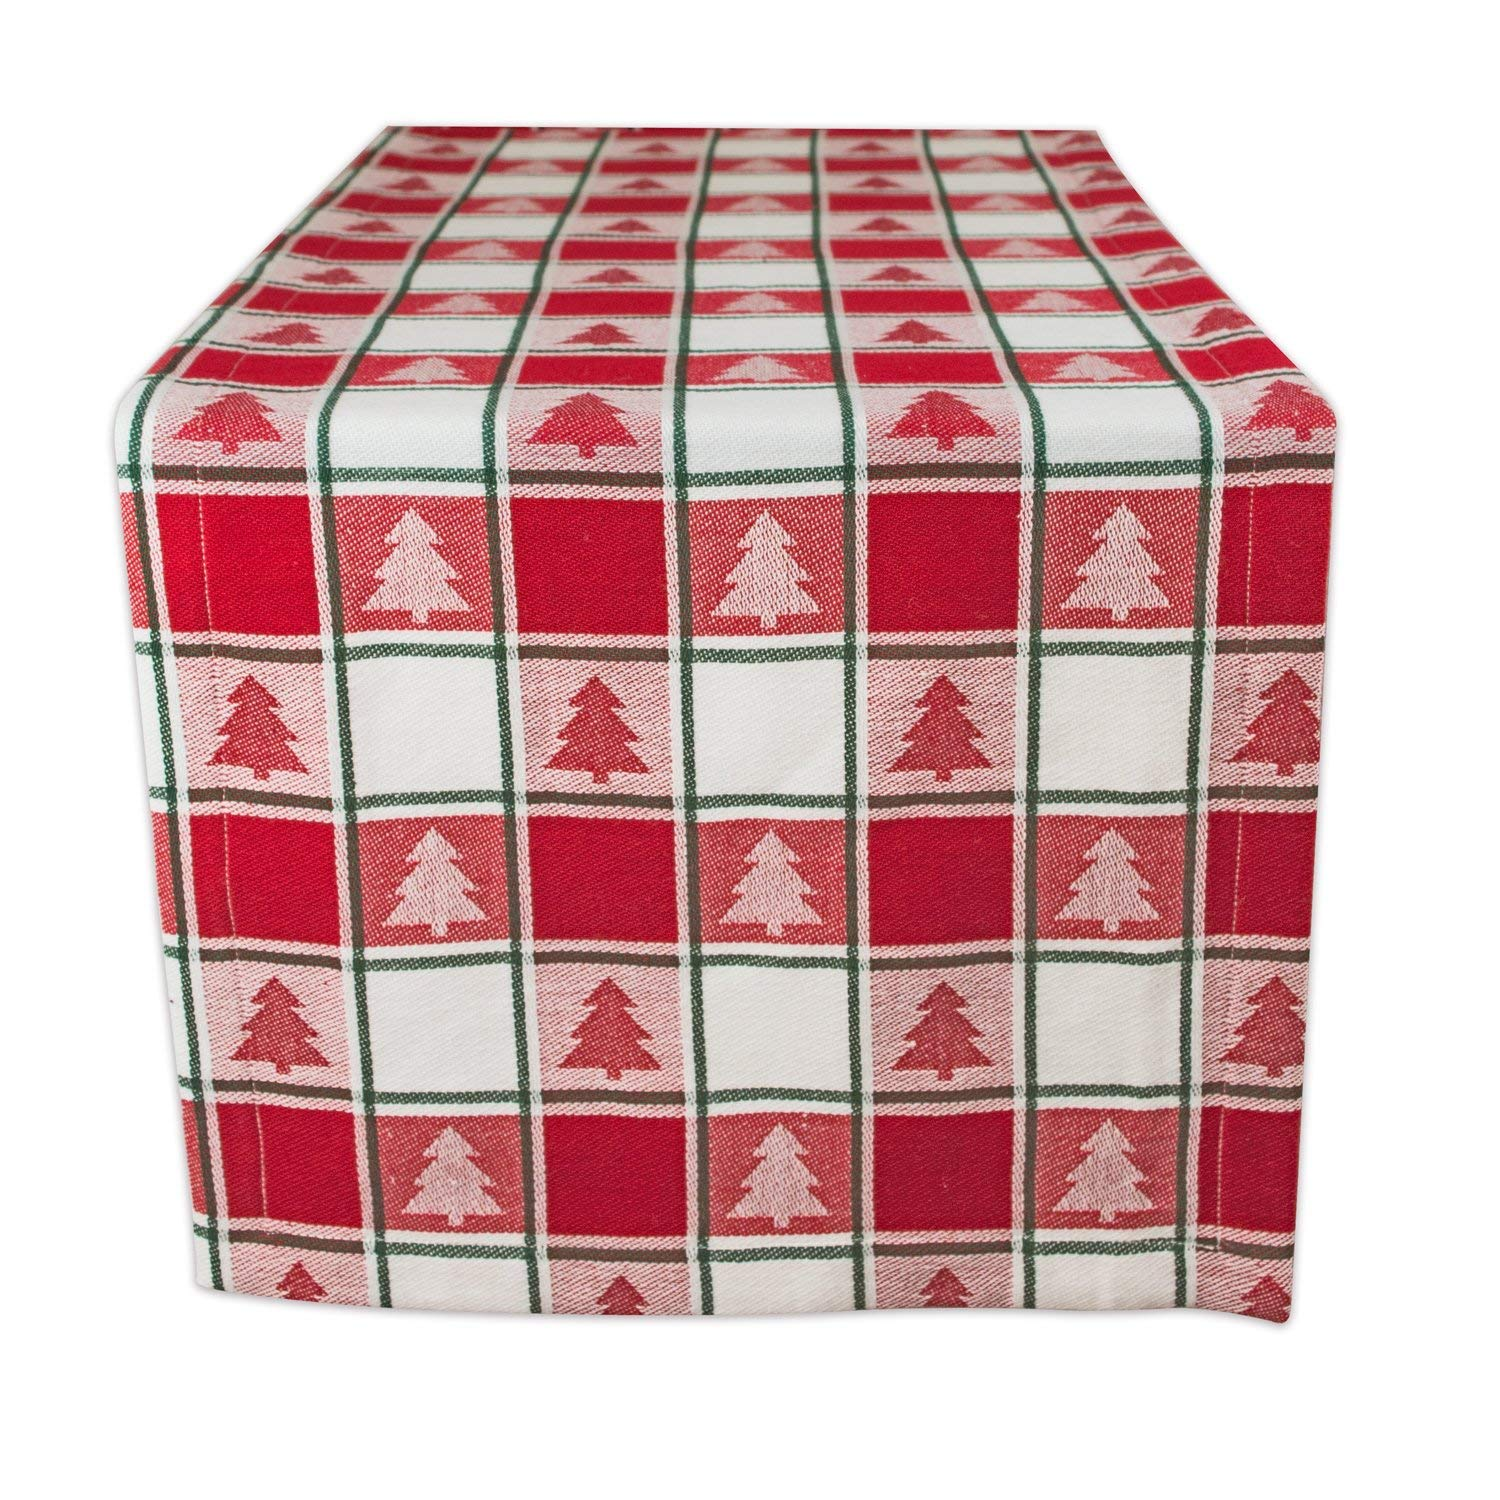 DII 100% Cotton, Machine Washable, Dinner, Christmas & Holiday Table Runner, 14x72, Red & White Check with Christmas Tree